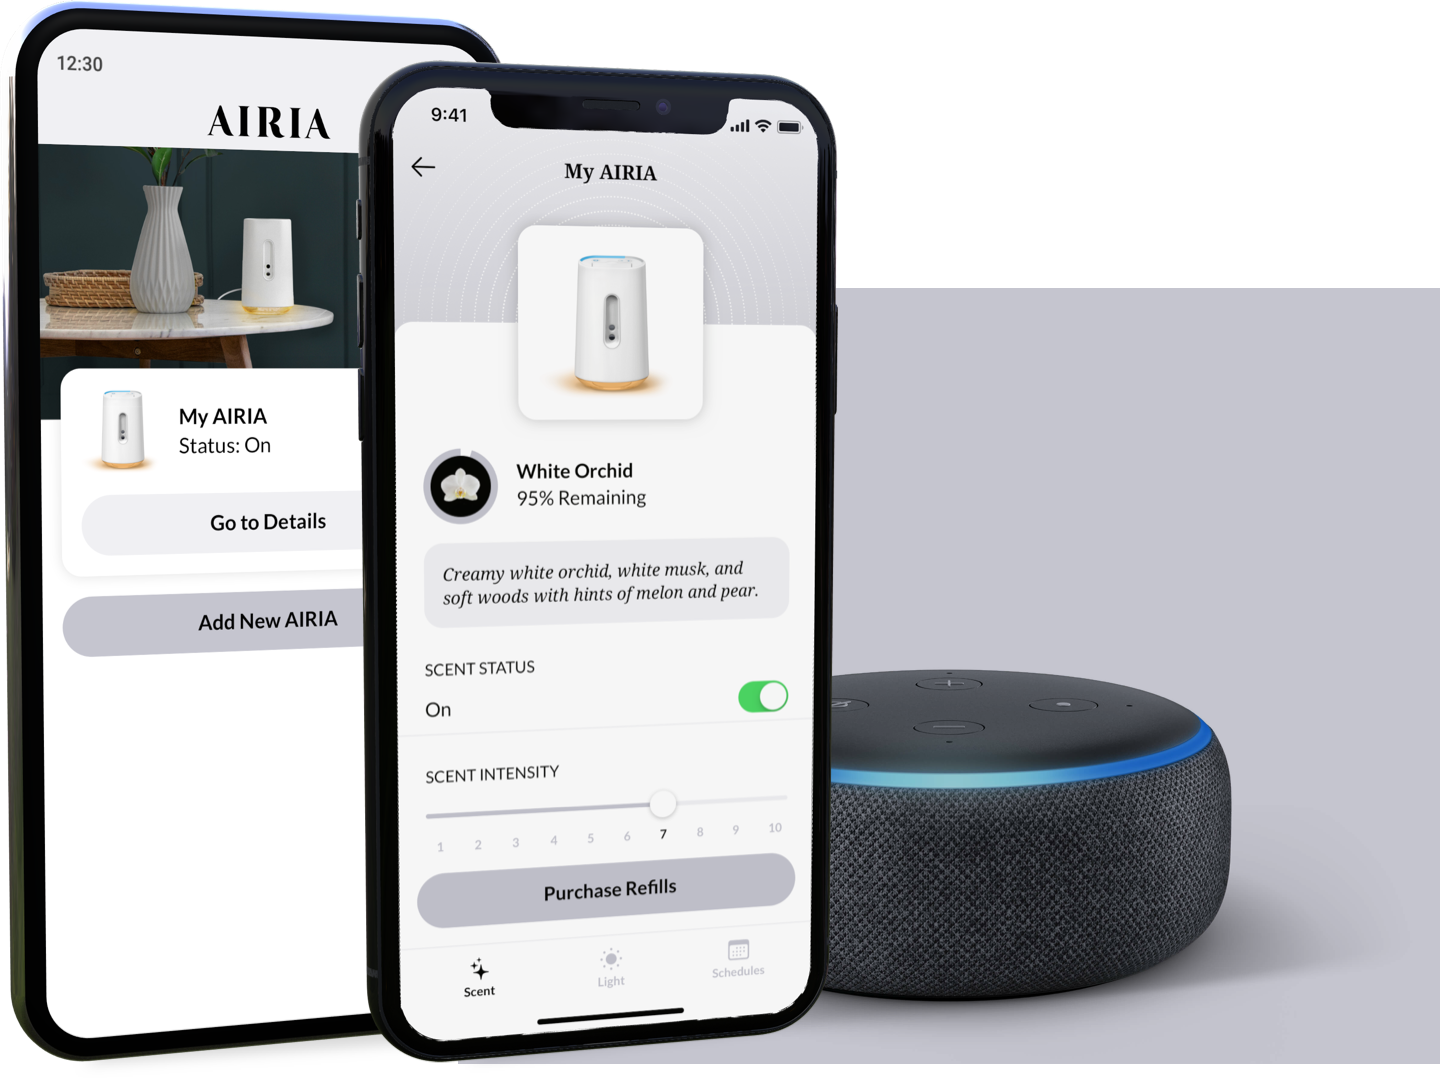 An Amazon Echo dot next to two smartphones, displaying the AIRIA app list and scent screens.